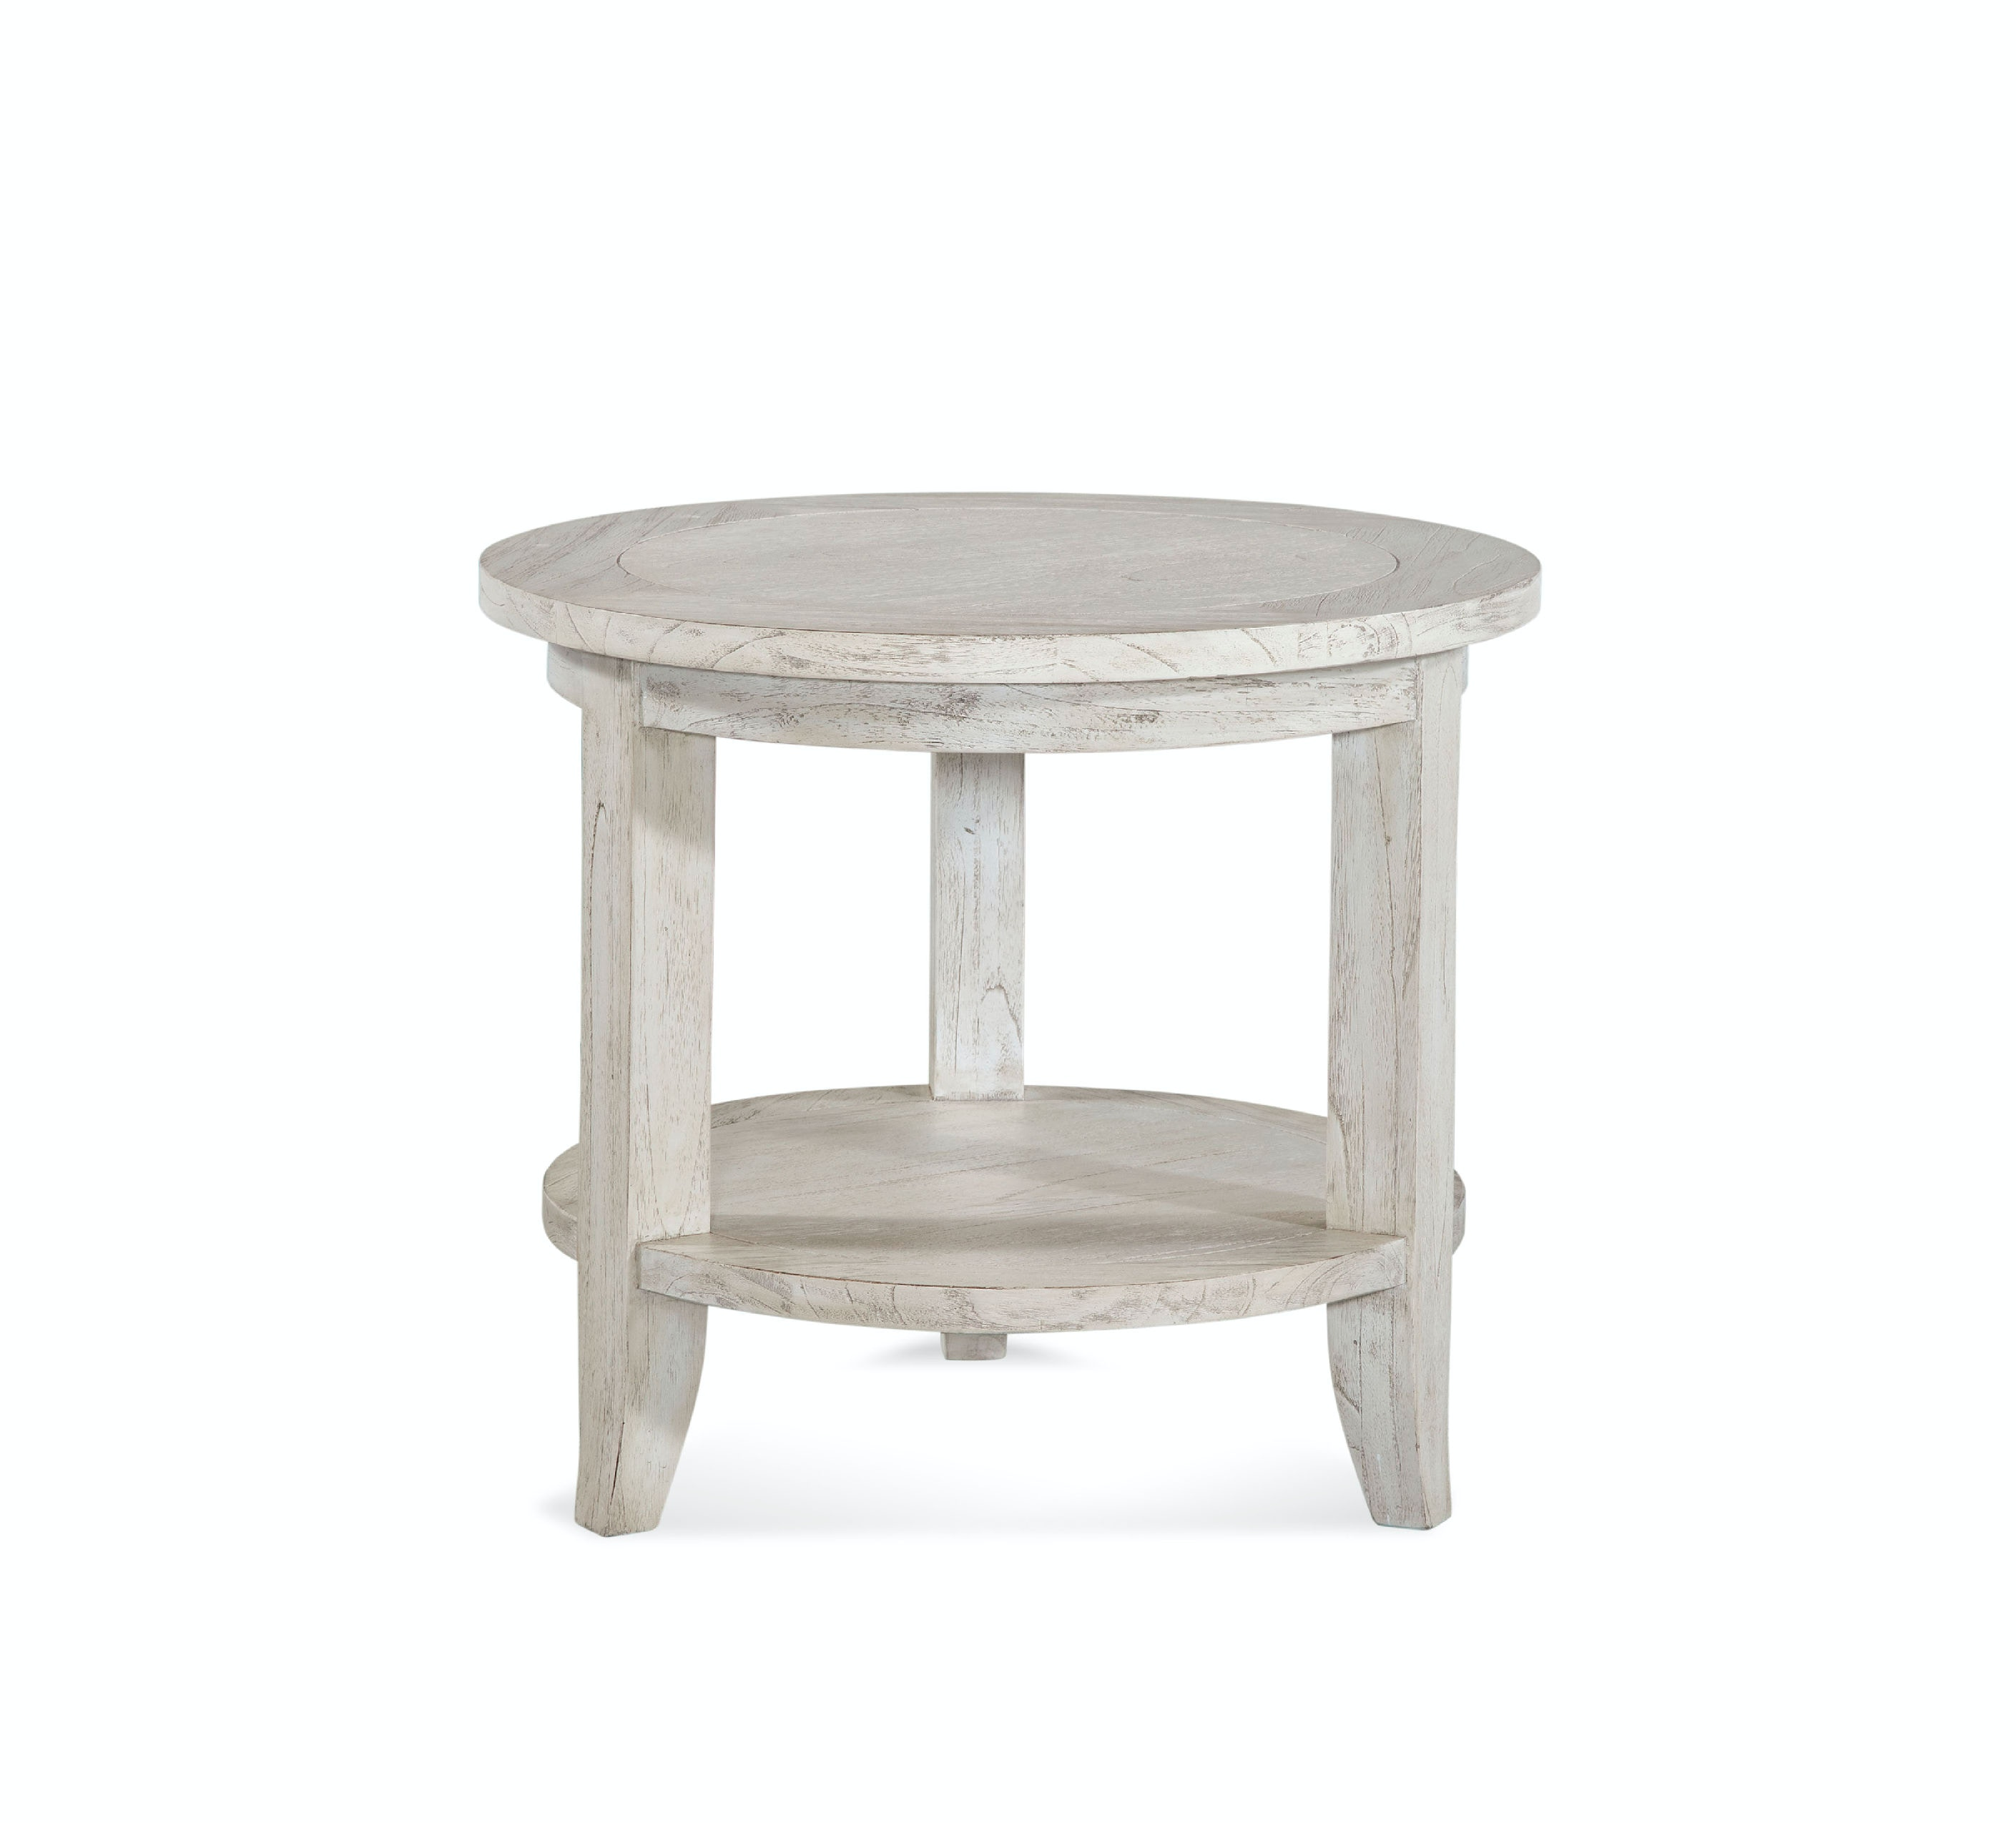 Fairwind Round End Table 2932-022